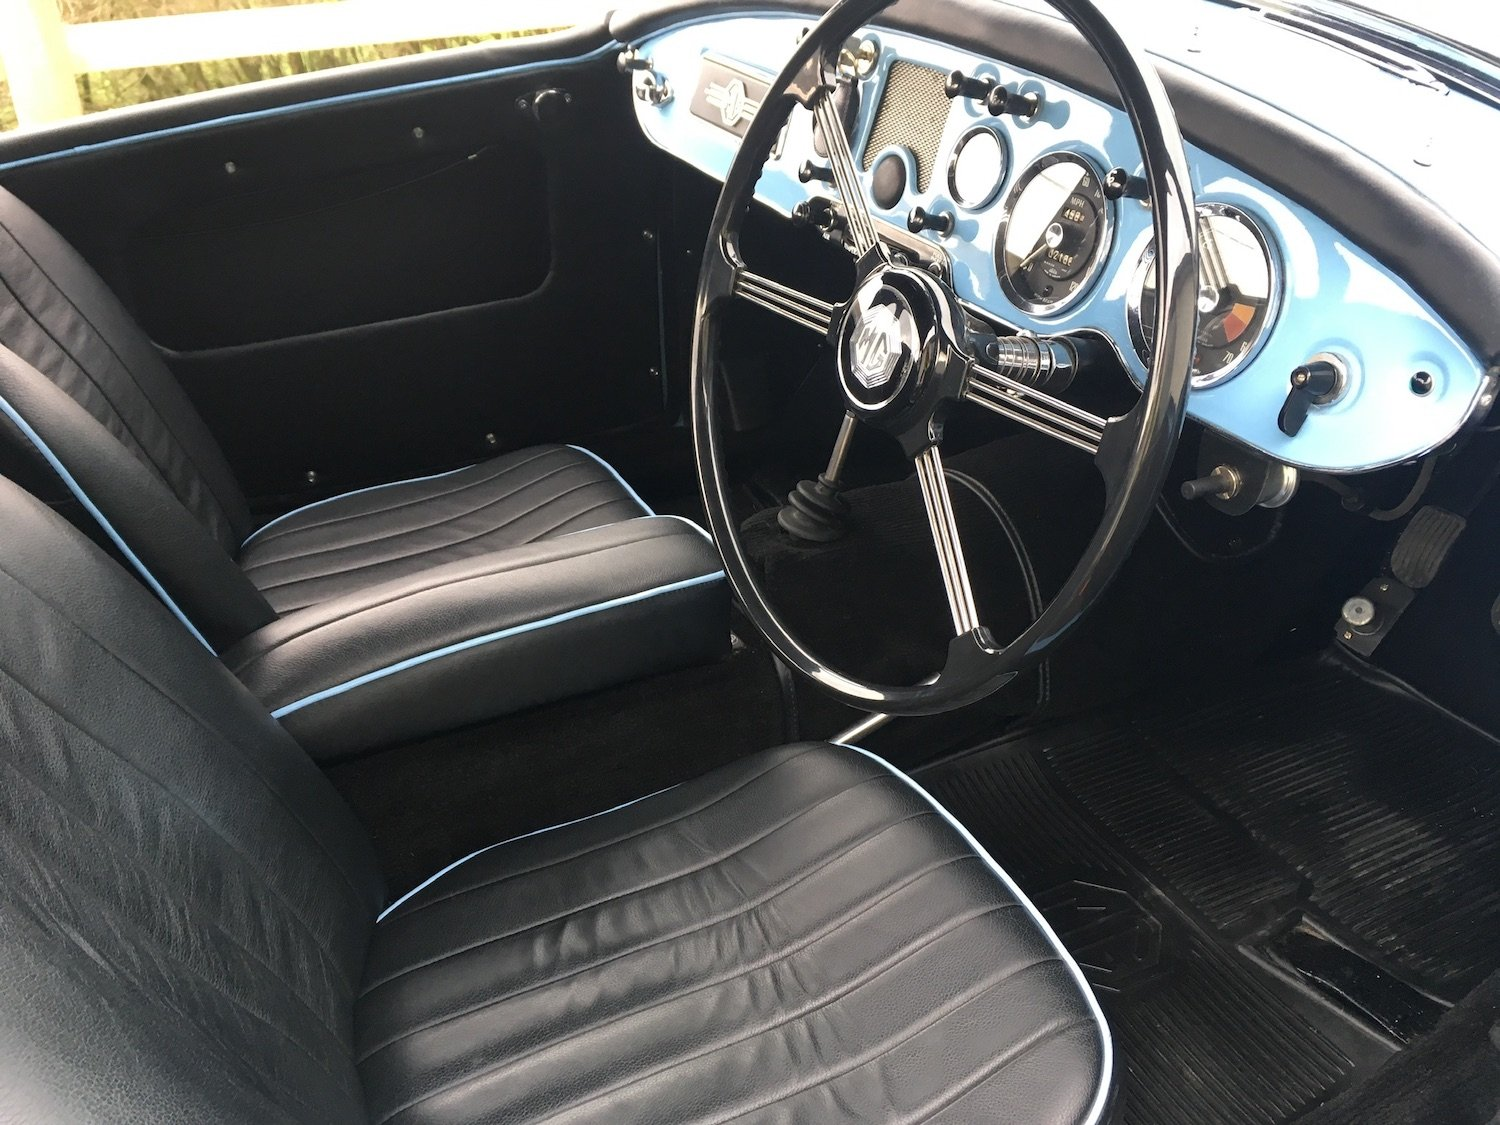 1960 MGA MK1 1600 Roadster - Superb Example SOLD (picture 6 of 6)